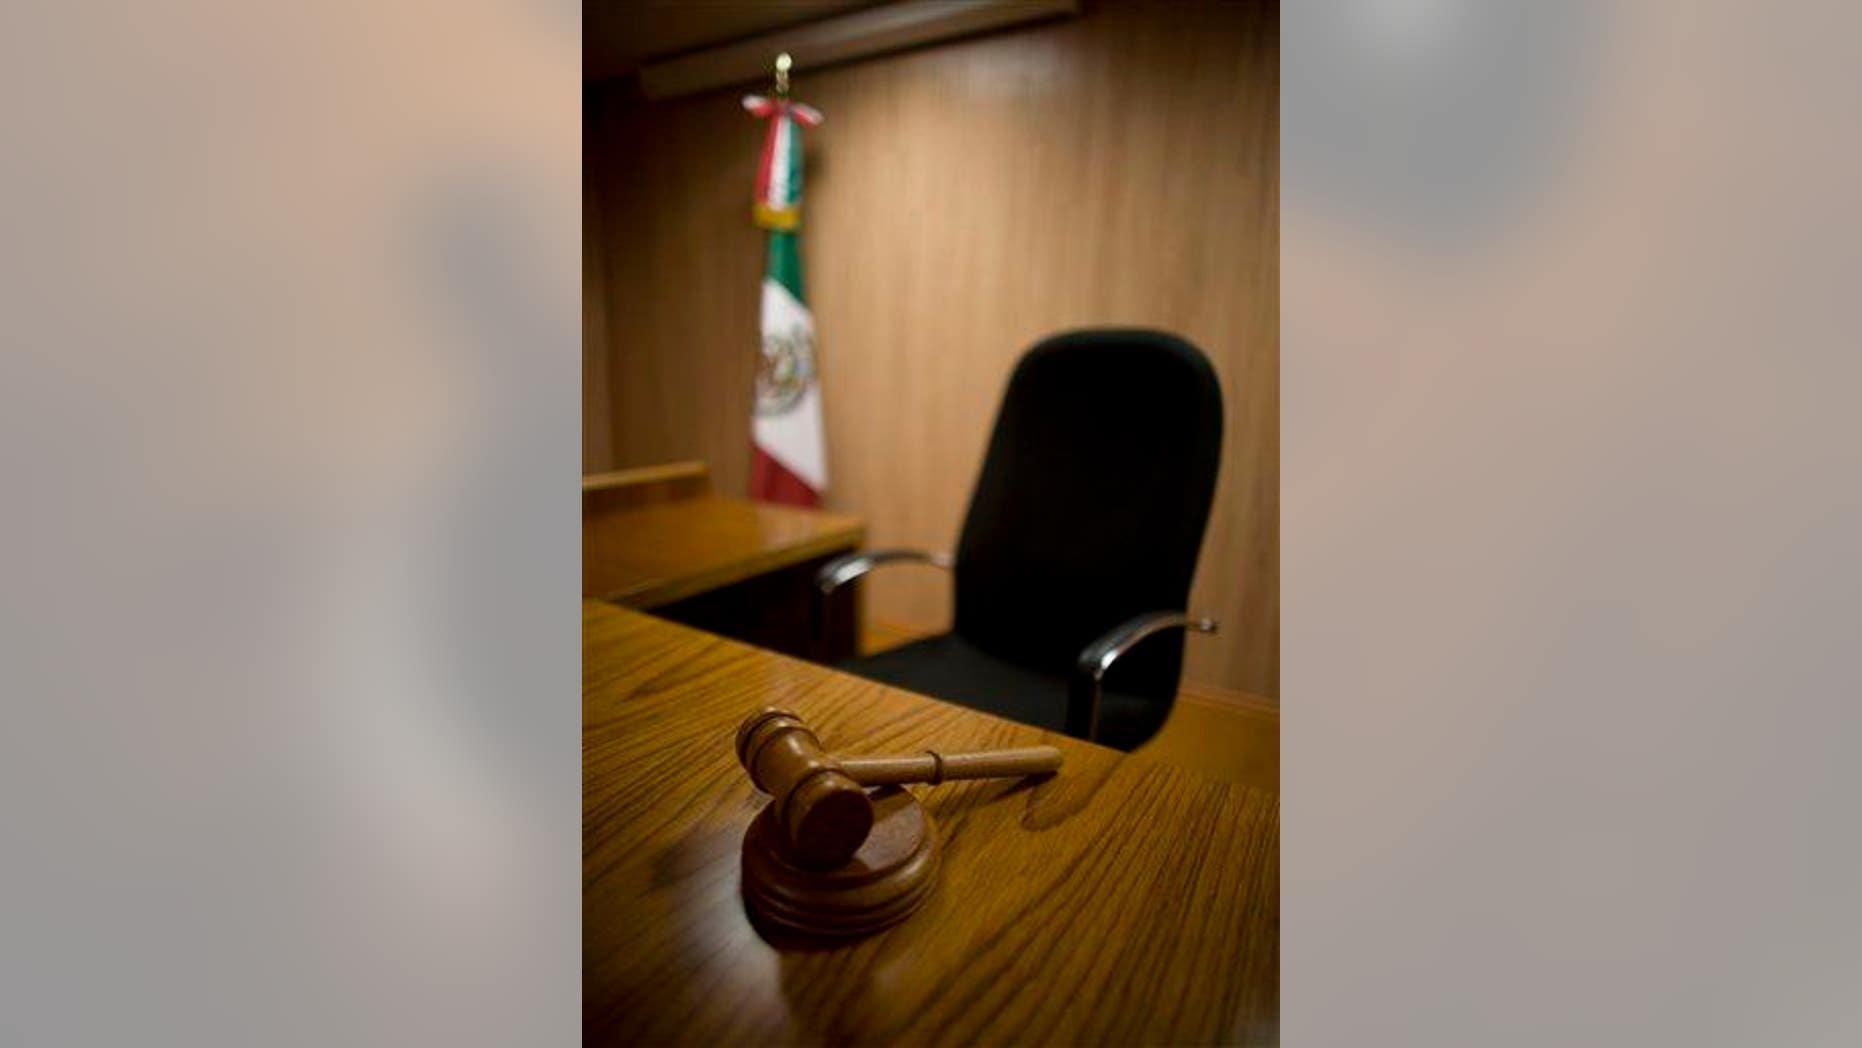 FILE -  In this July 12, 2008 file photo, a gavel rests on the table of a model court room at Mexico's National Institute of Penal Sciences in Mexico City. The model courtroom has been used by students to prepare for the new legal system that will replace its closed proceedings with public oral trials in which suspects are presumed innocent, legal authorities can be held more accountable and equal justice is promised to all. Yet the decision of three Chihuahua state judges, under the new open oral trial system, to absolve the main suspect in the 2008 murder of a 16-year-old girl has put the country's U.S.-backed judicial reform on trial. (AP Photo/Dario Lopez-Mills, File)